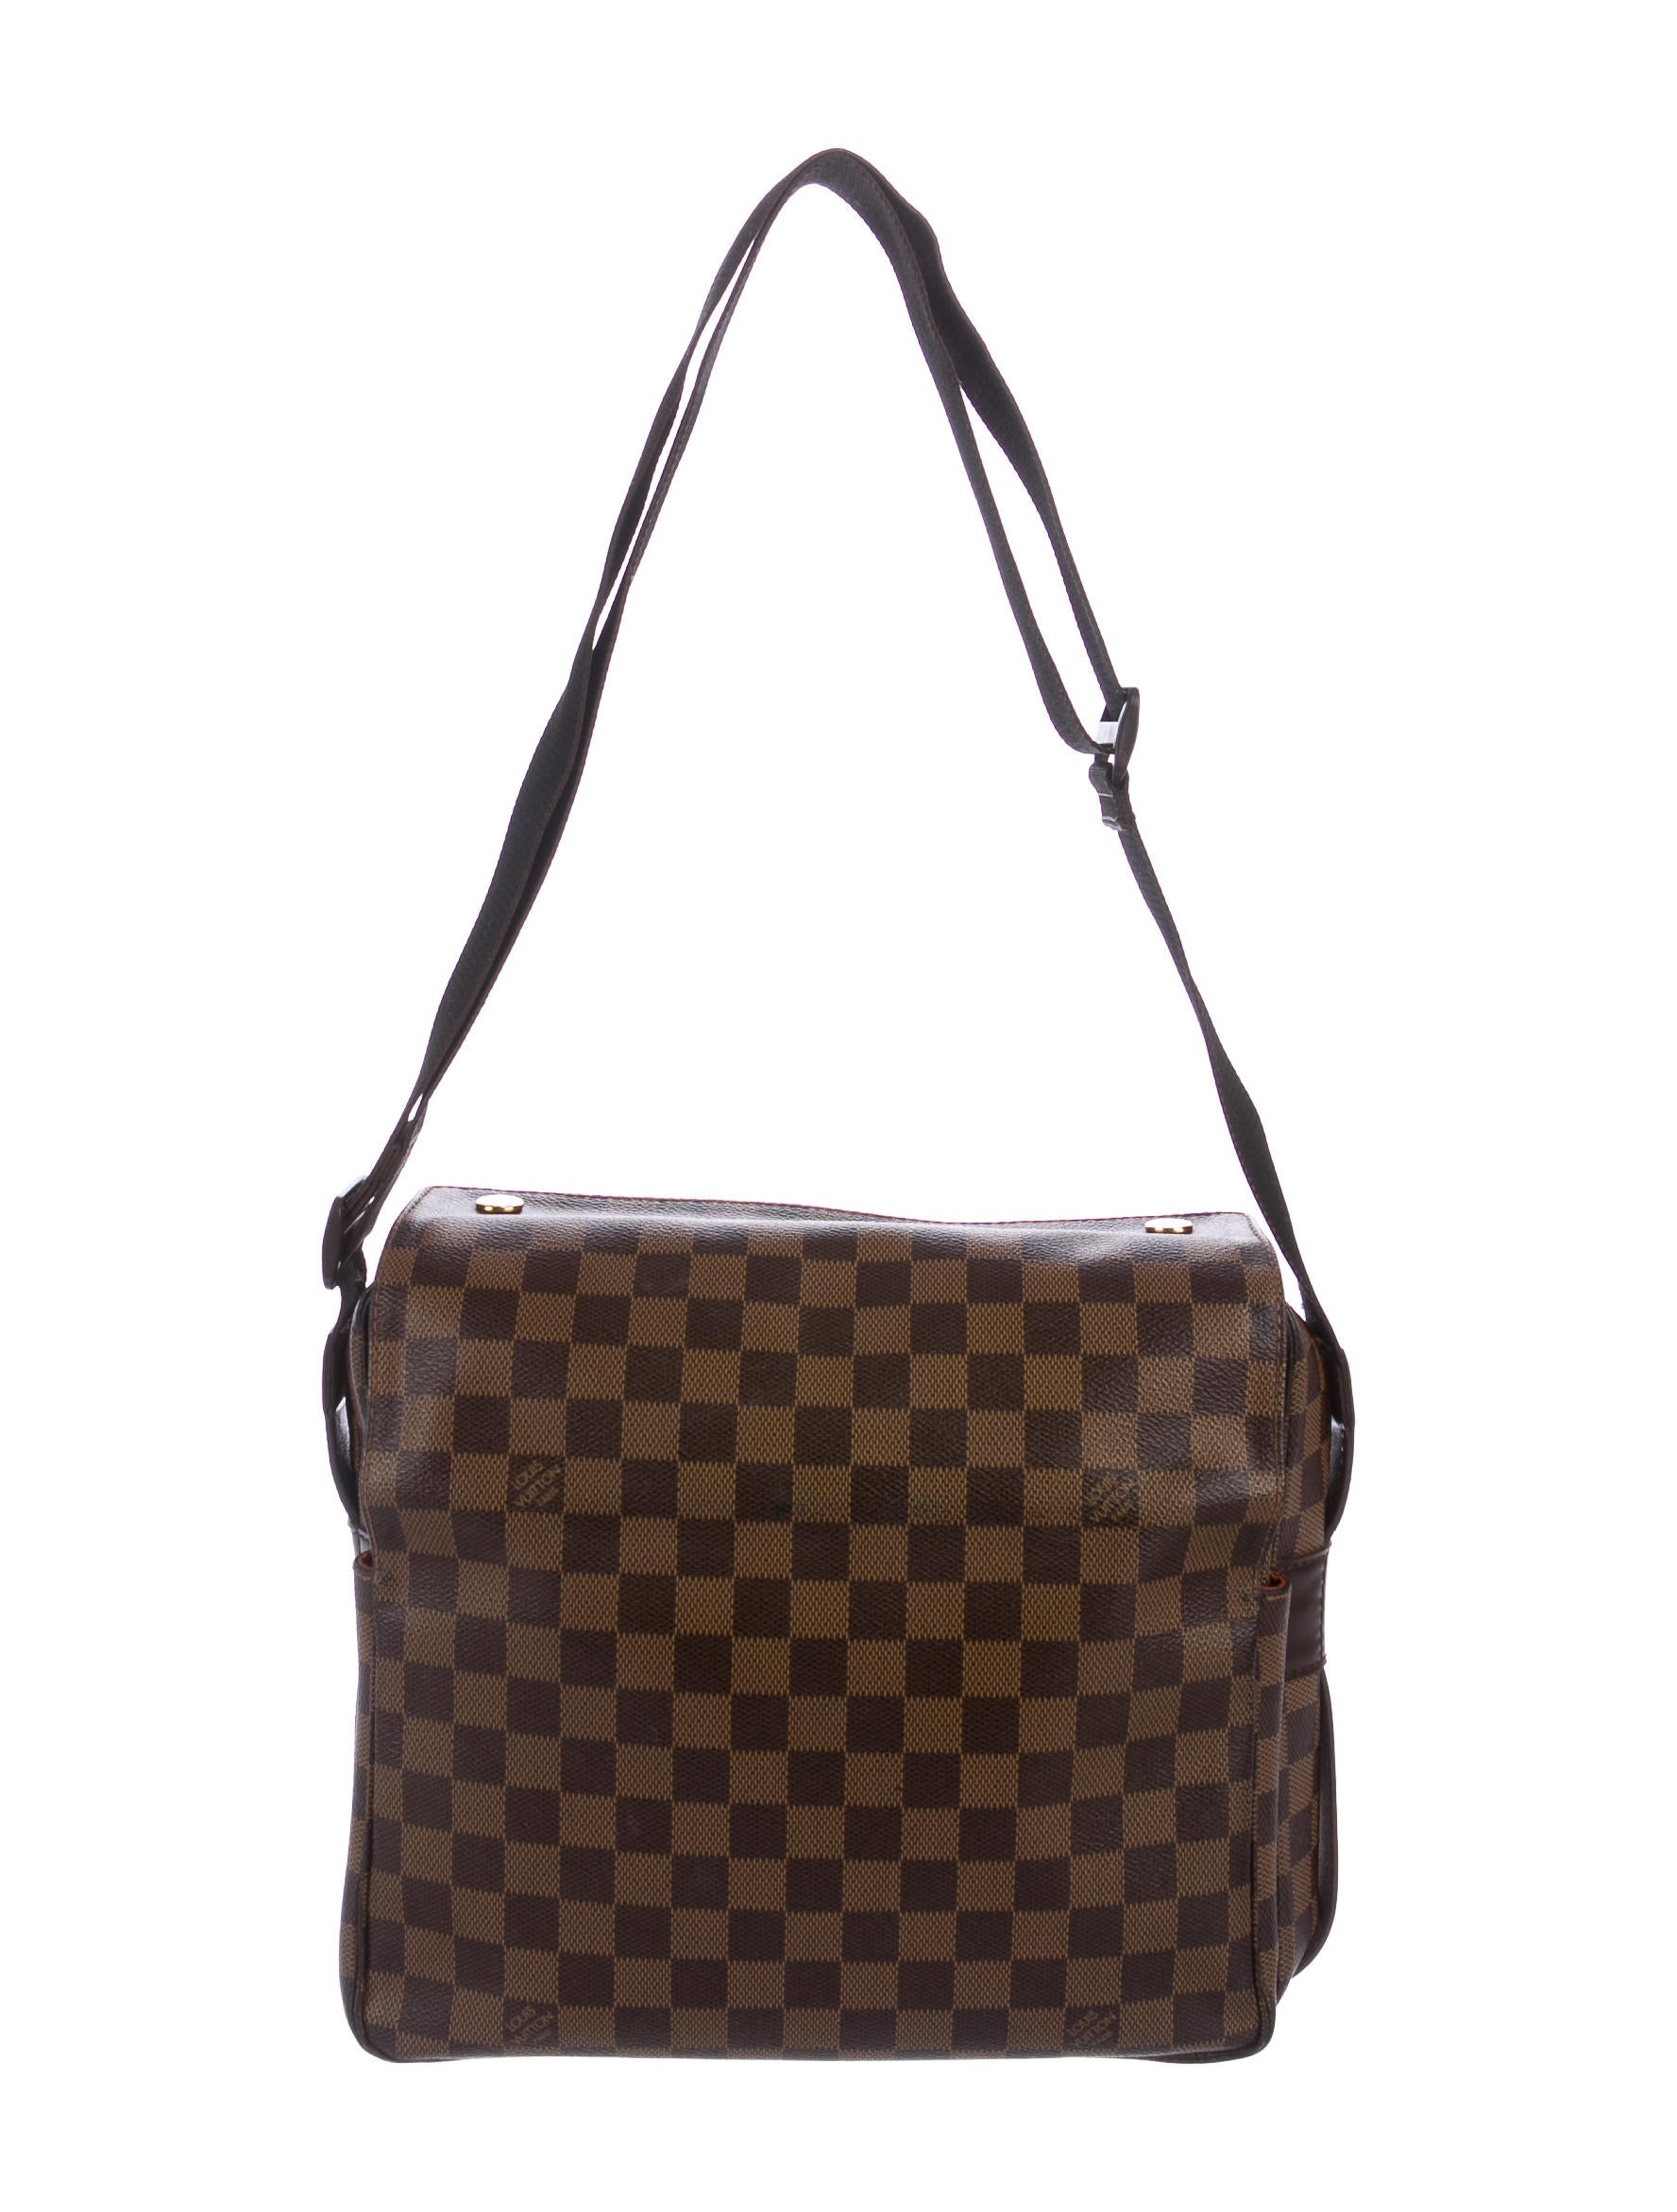 Creative Louis Vuitton Monogram Abbesses Messenger Bag - Handbags - LOU75275 | The RealReal